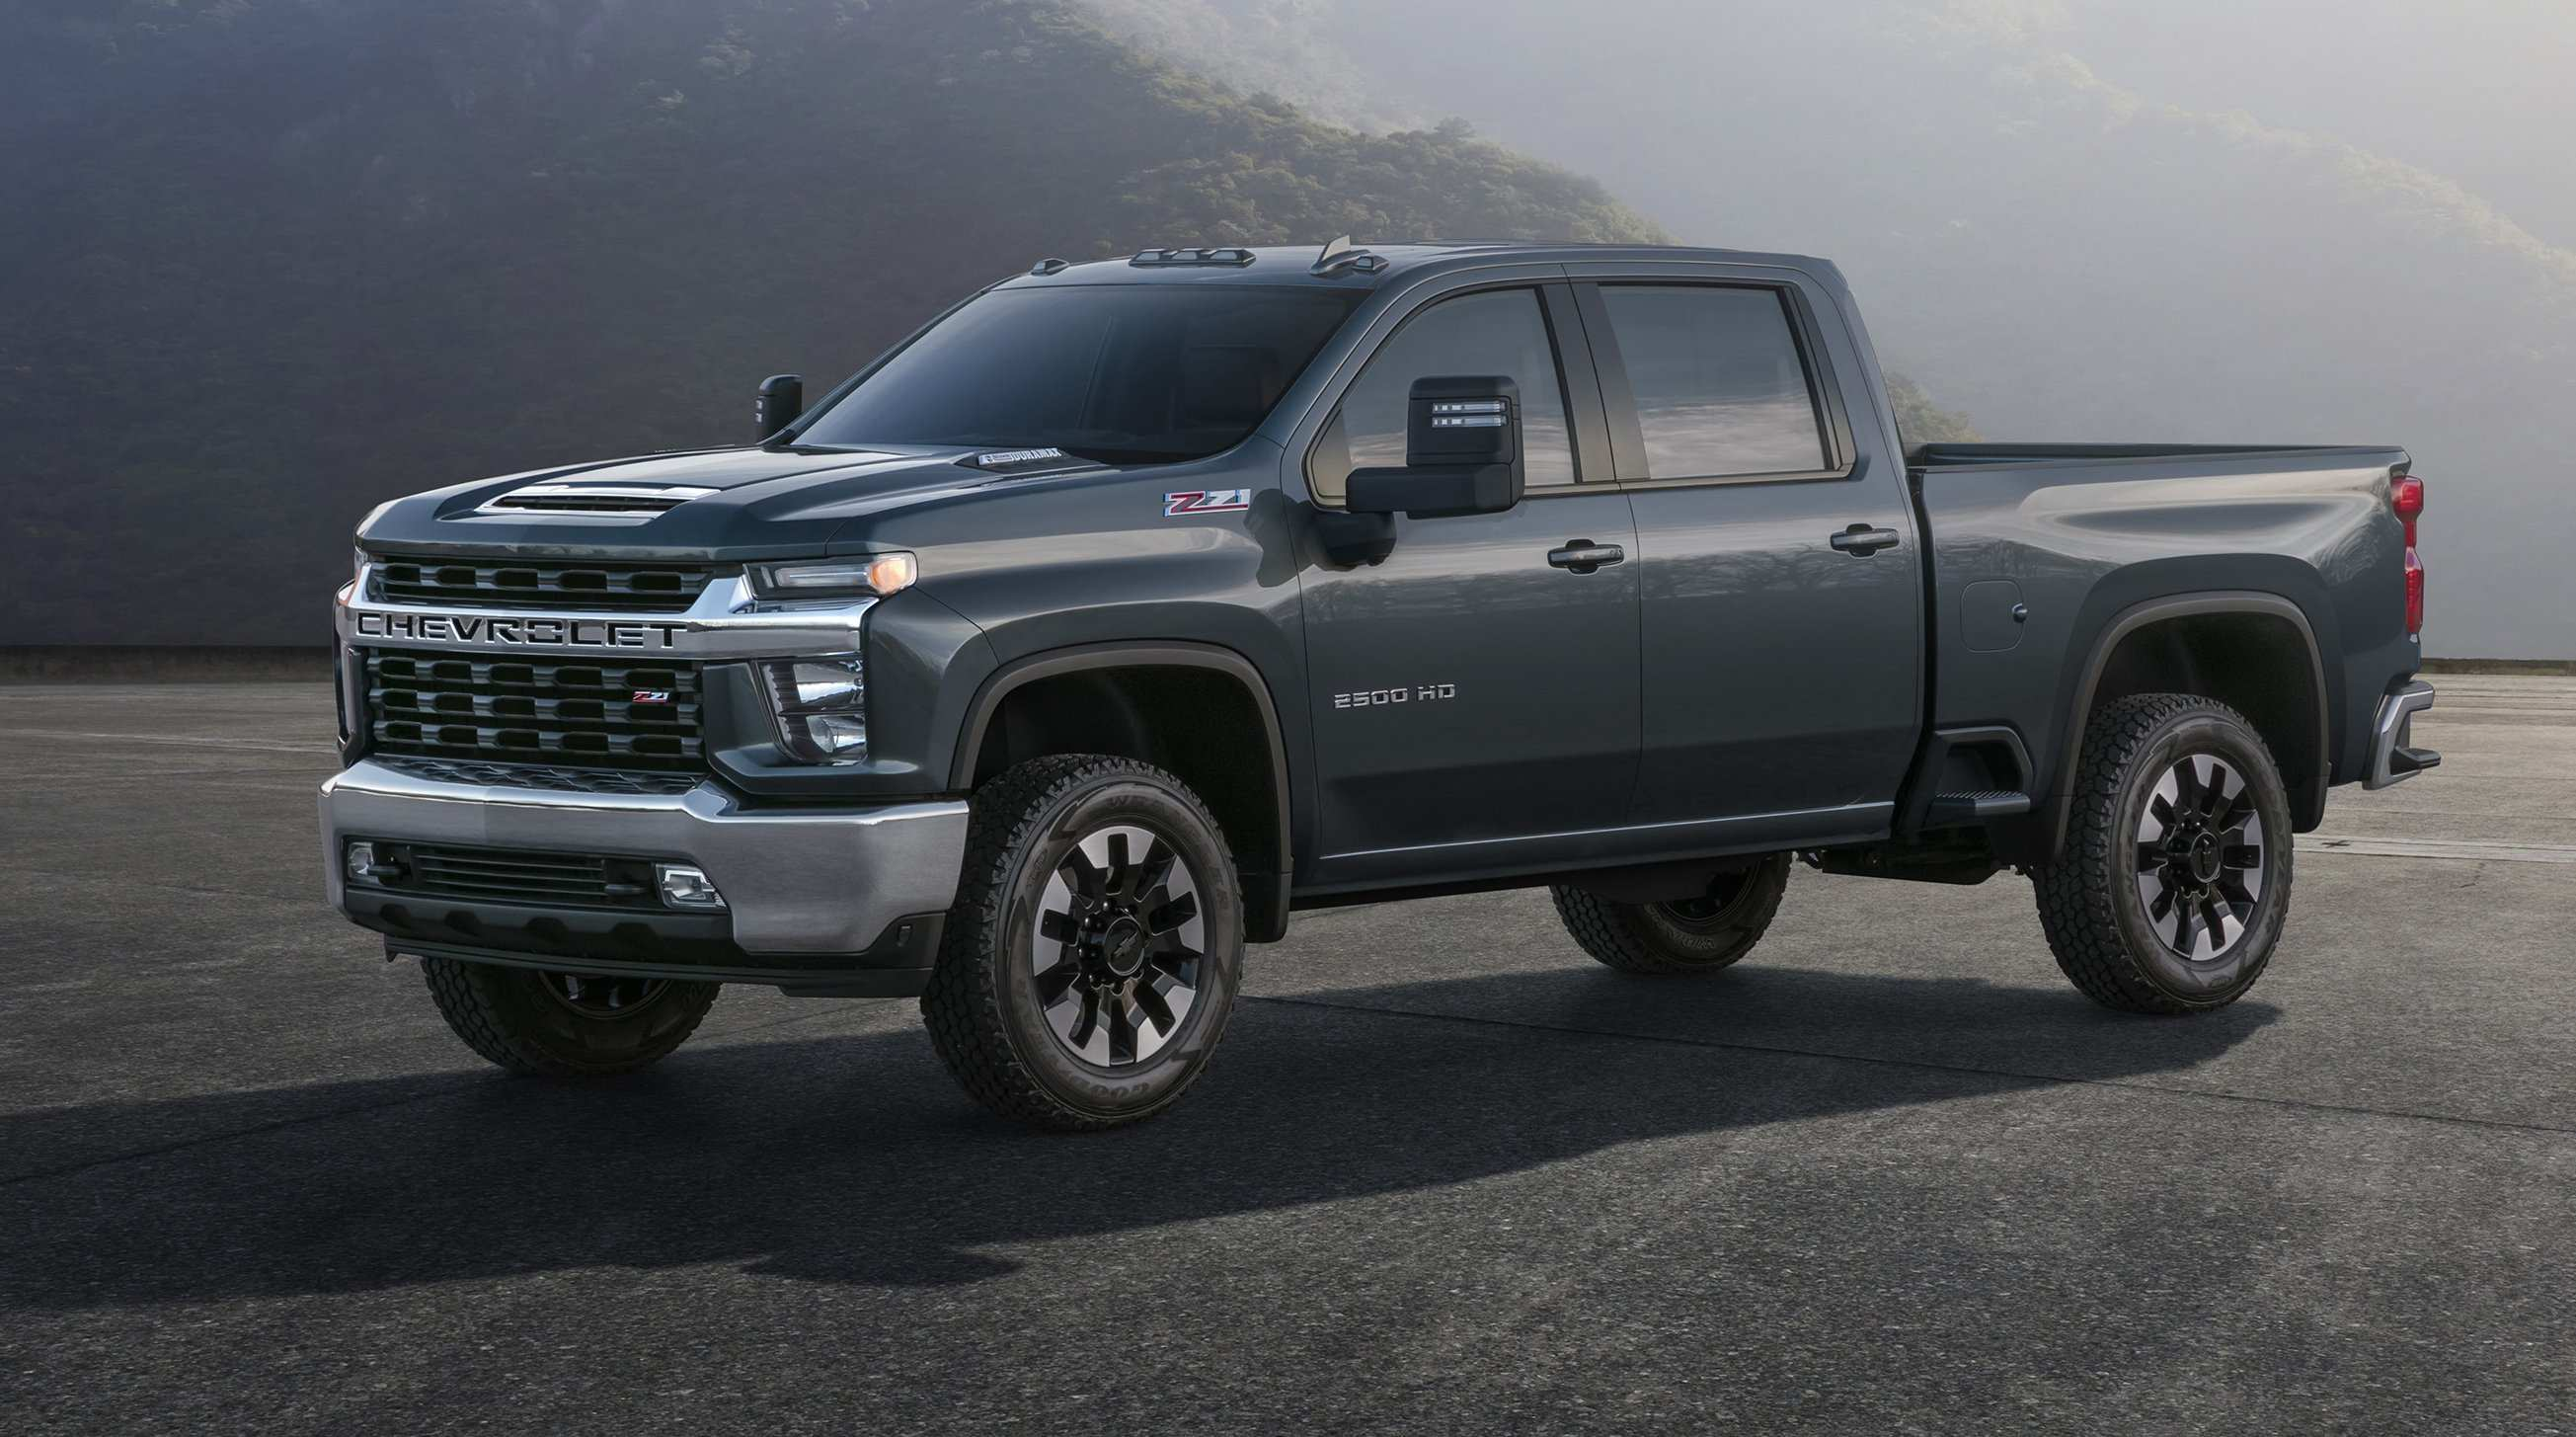 27 New 2020 Chevrolet Silverado Wallpaper with 2020 Chevrolet Silverado